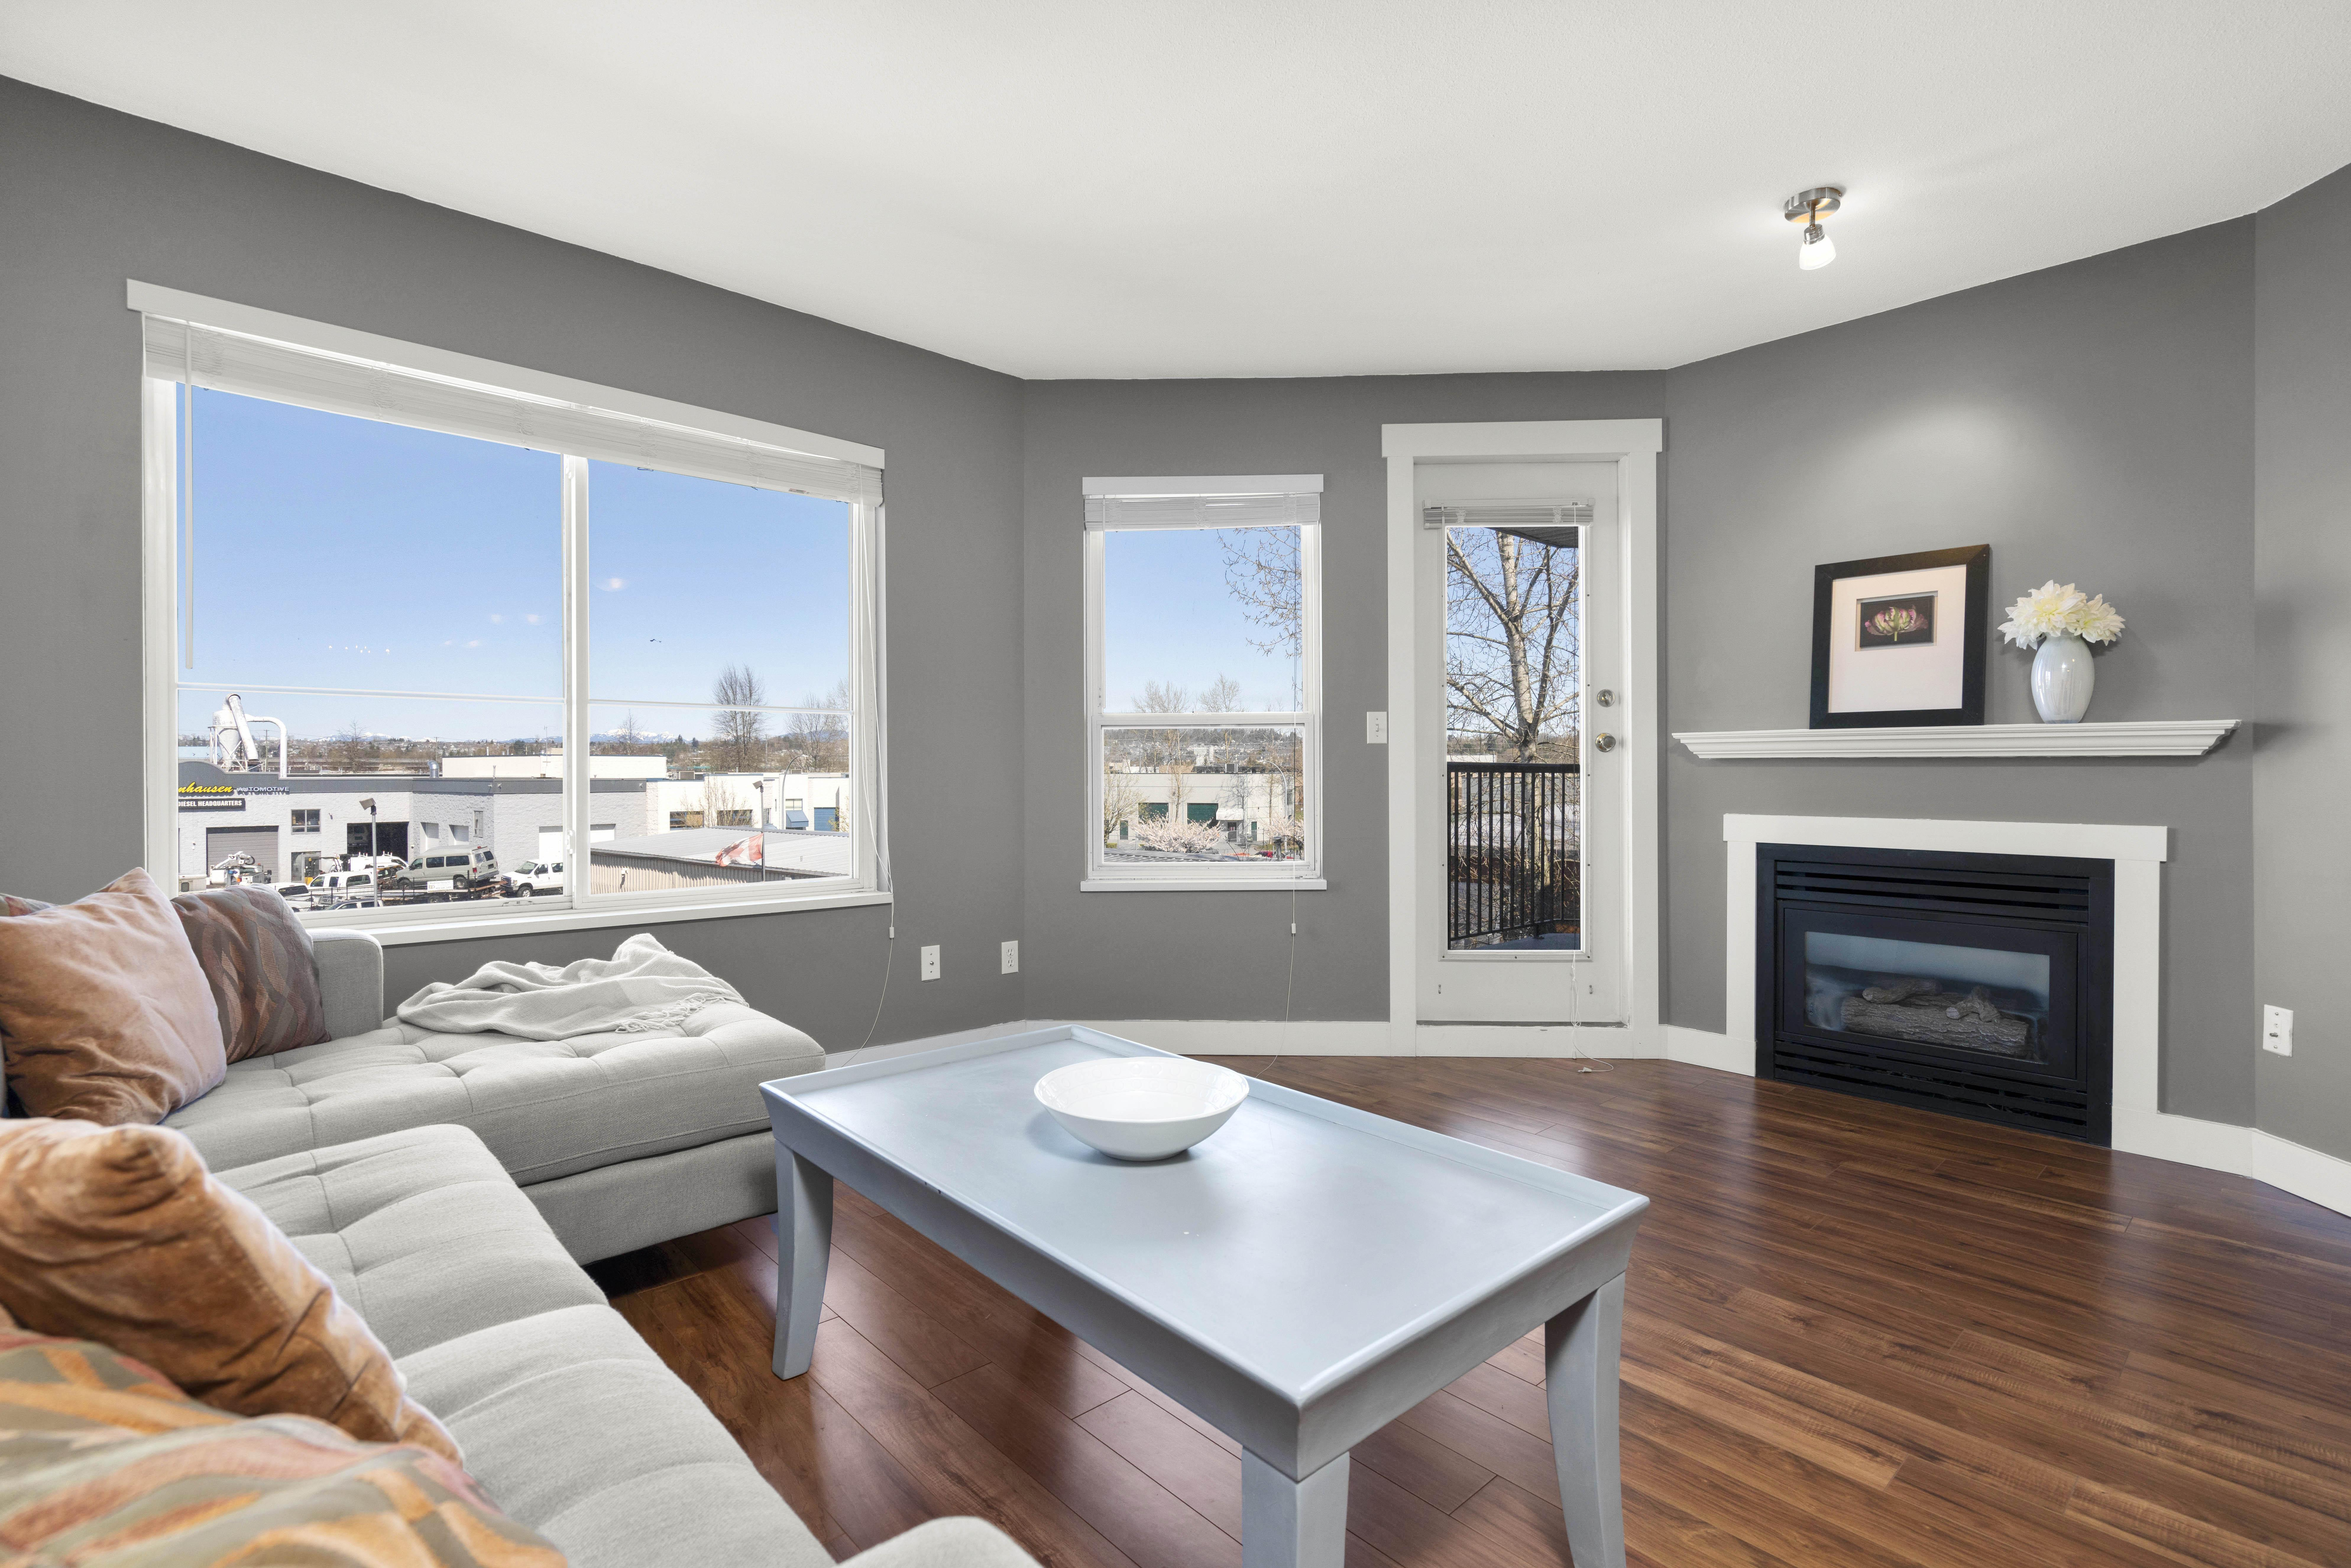 309 - 5756 Glover Road, Langley City, Langley 1